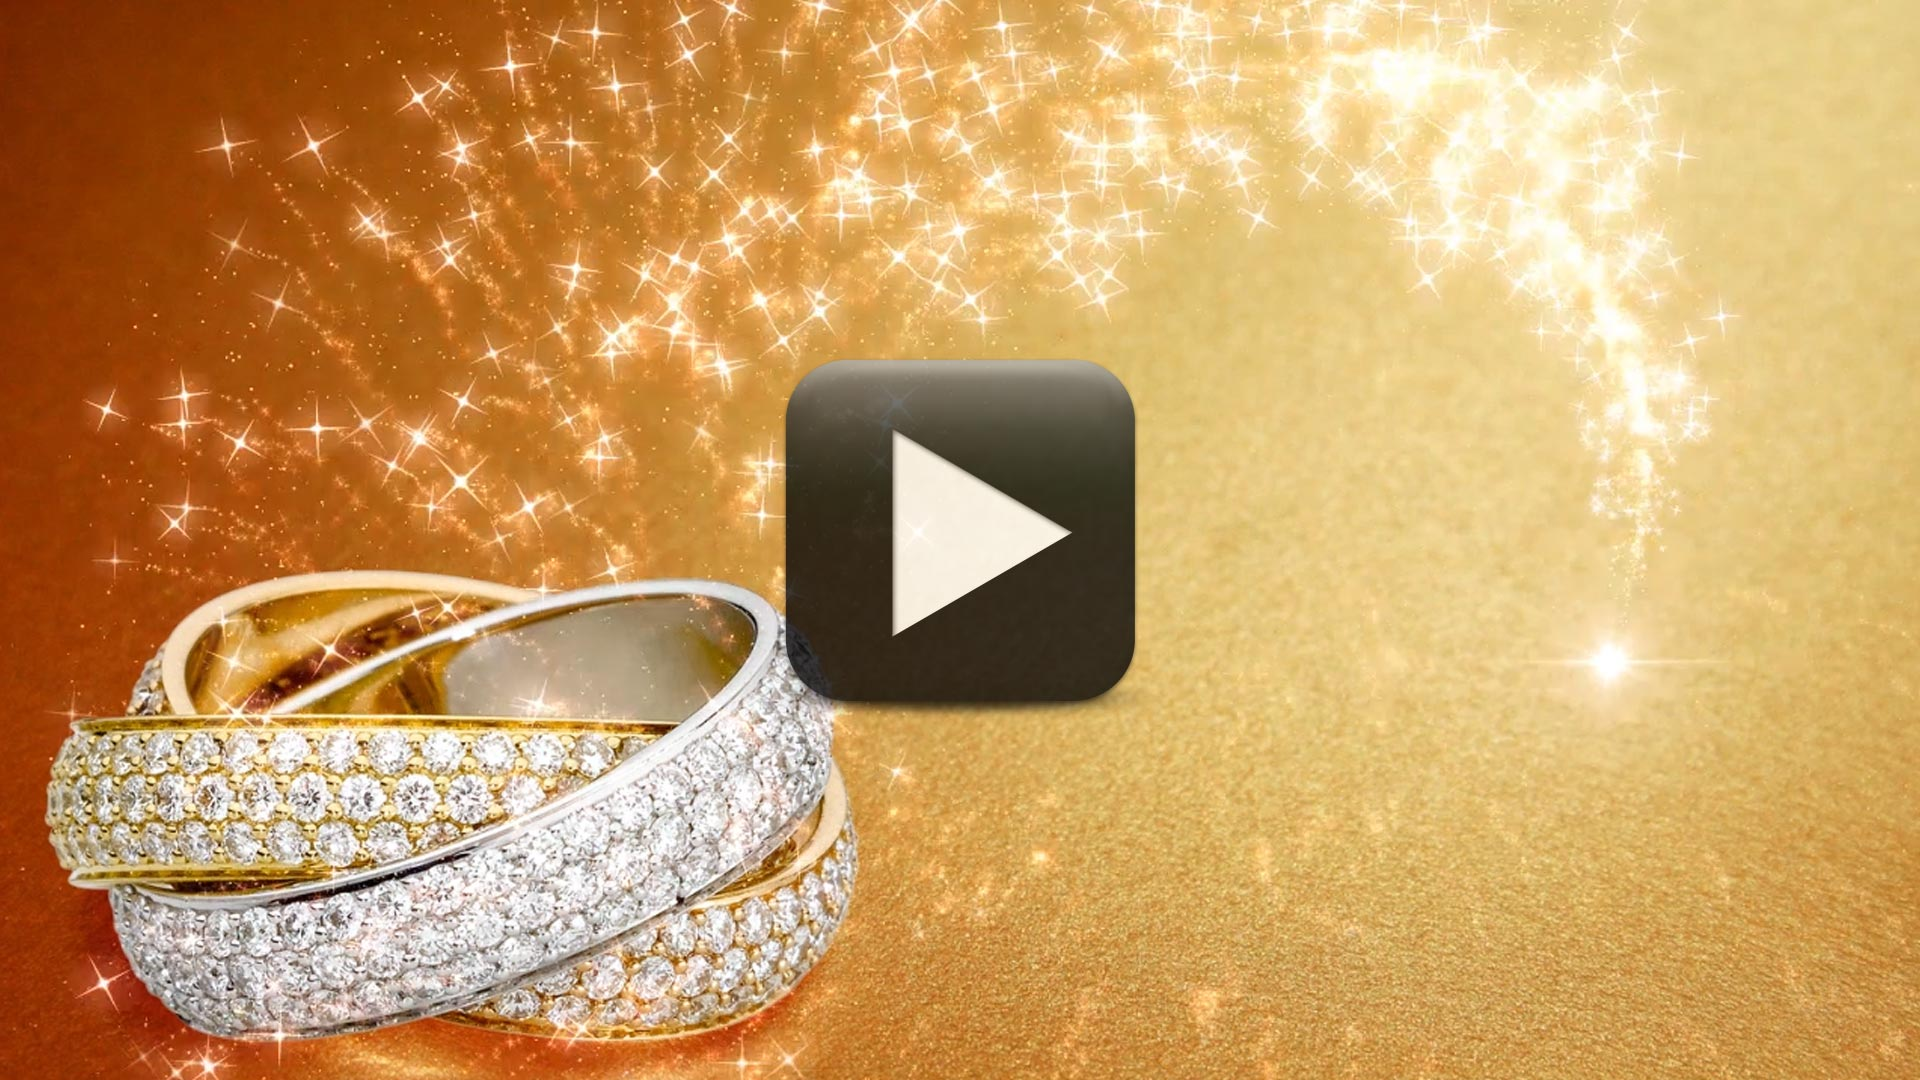 HD Wedding Animation Background Video Effects | All Design Creative